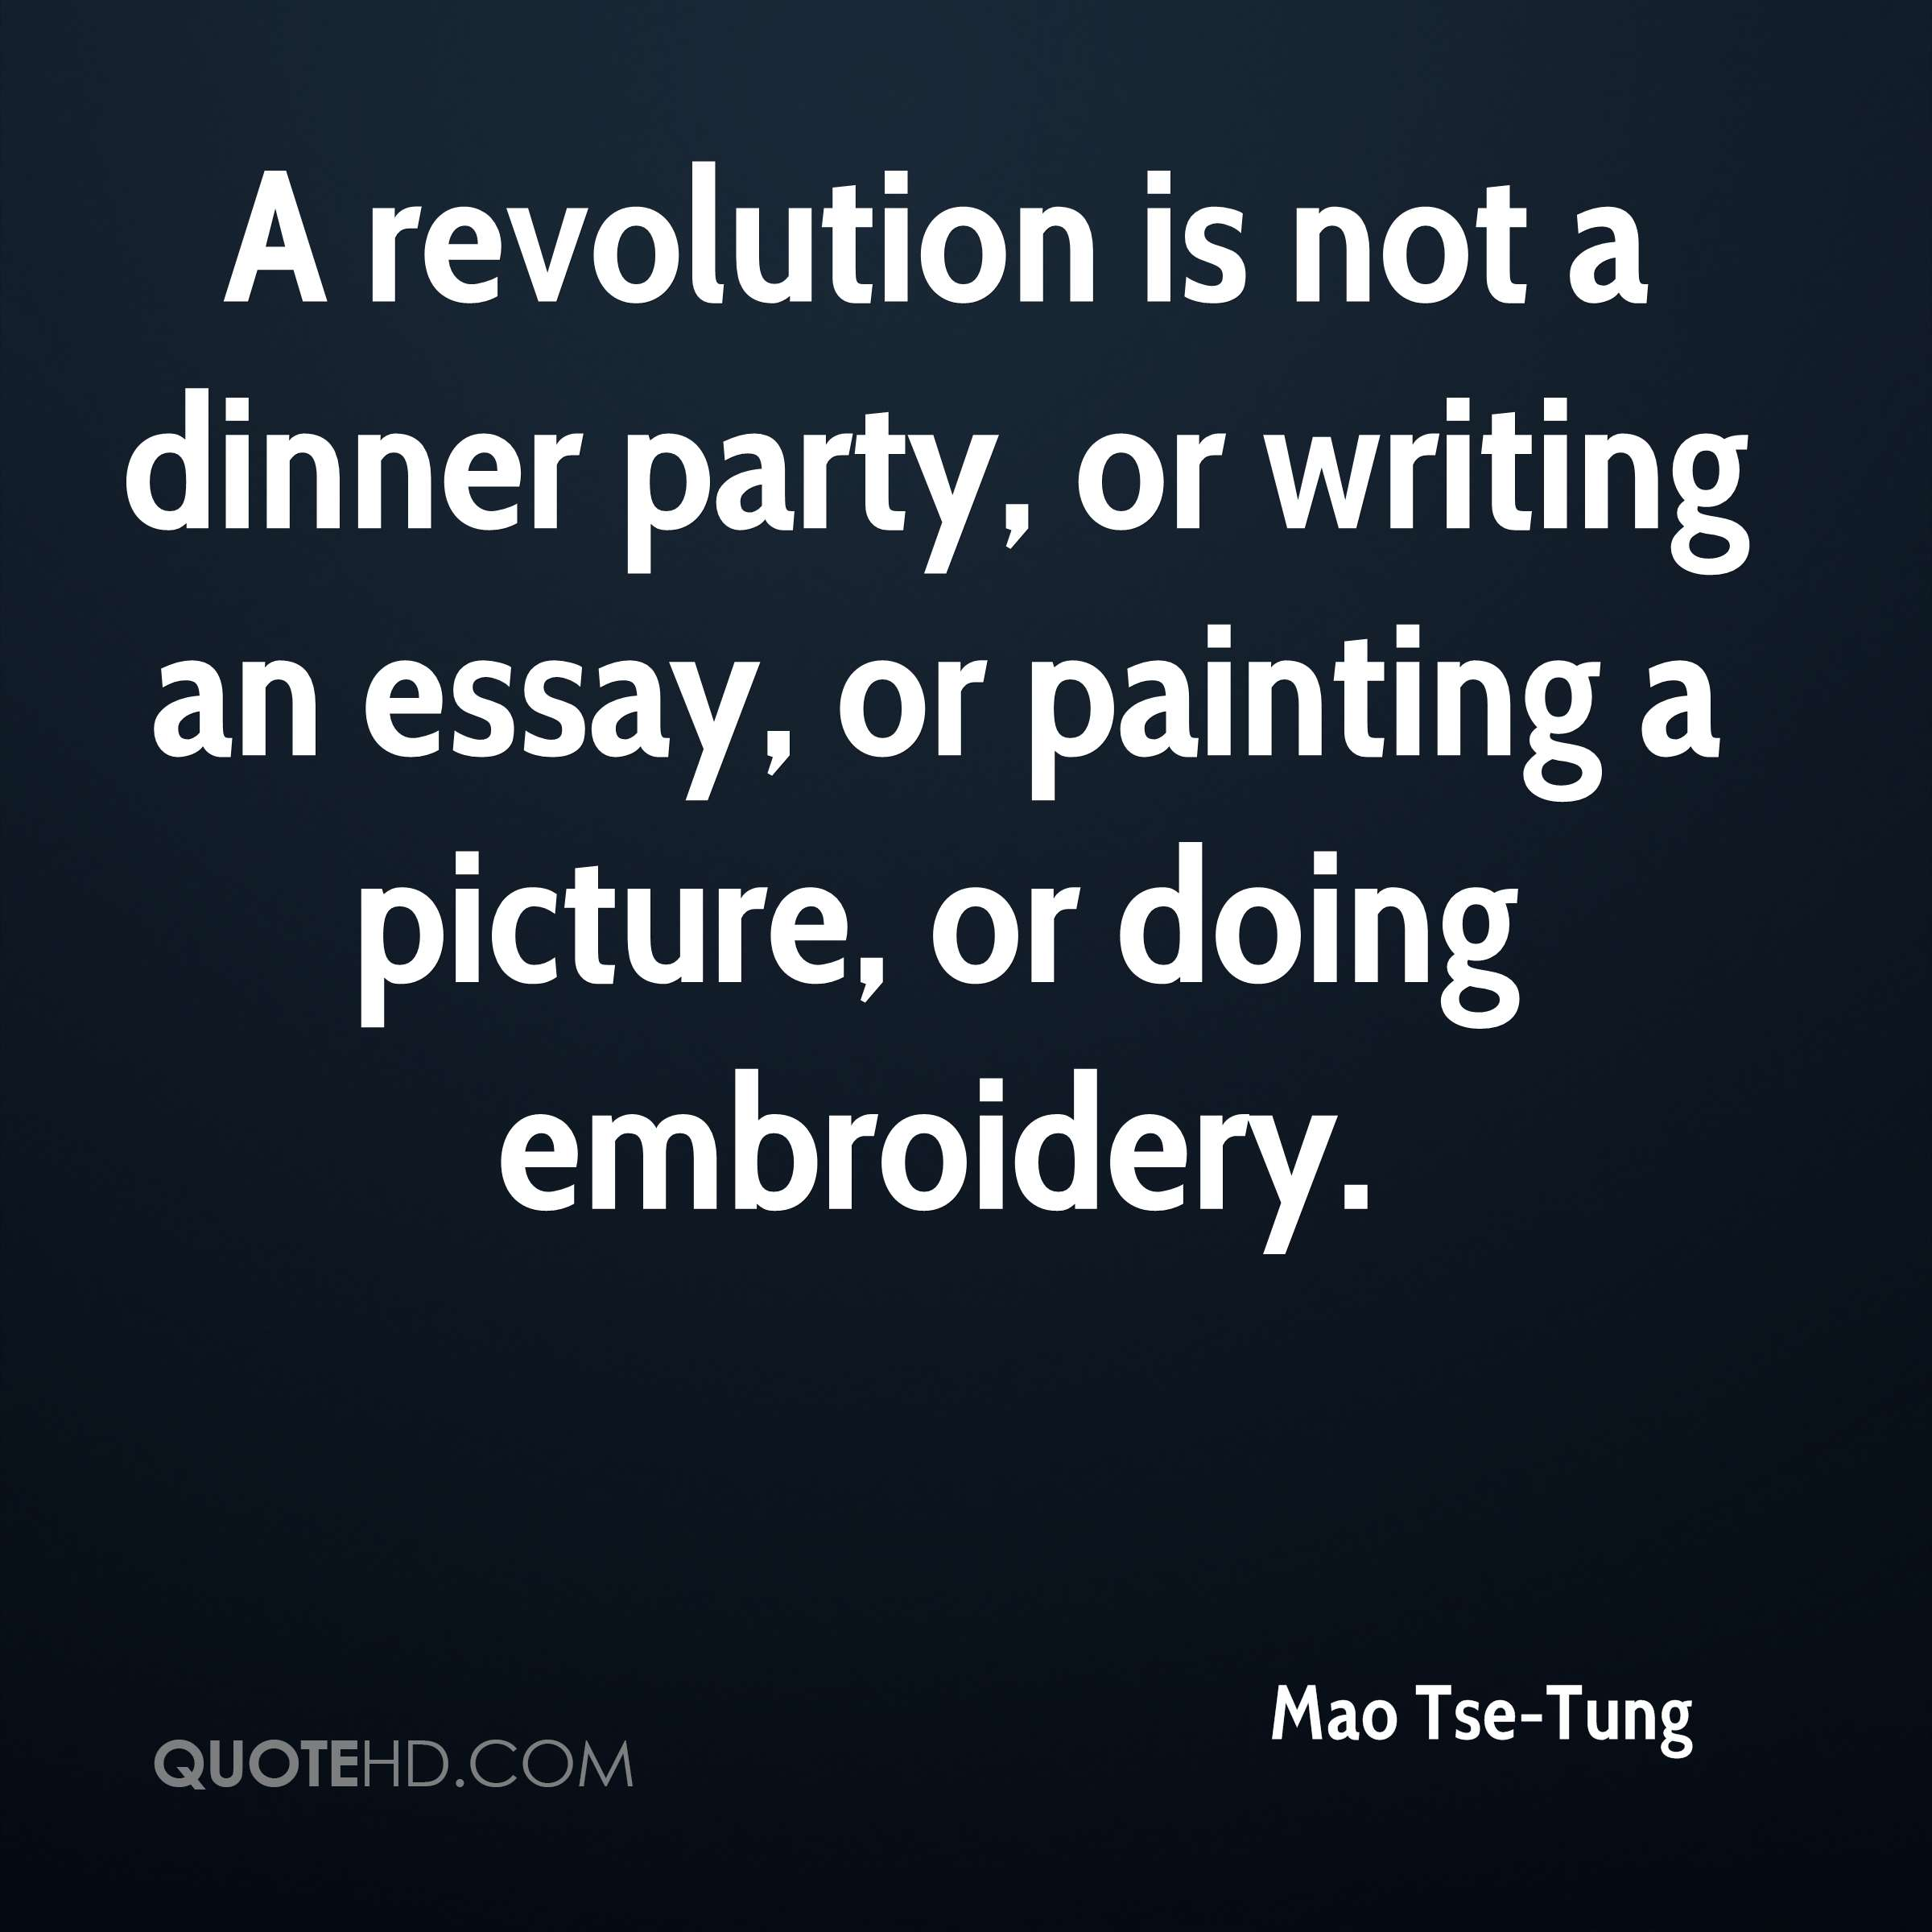 mao tse tung quotes  a revolution is not a dinner party or writing an essay or painting a